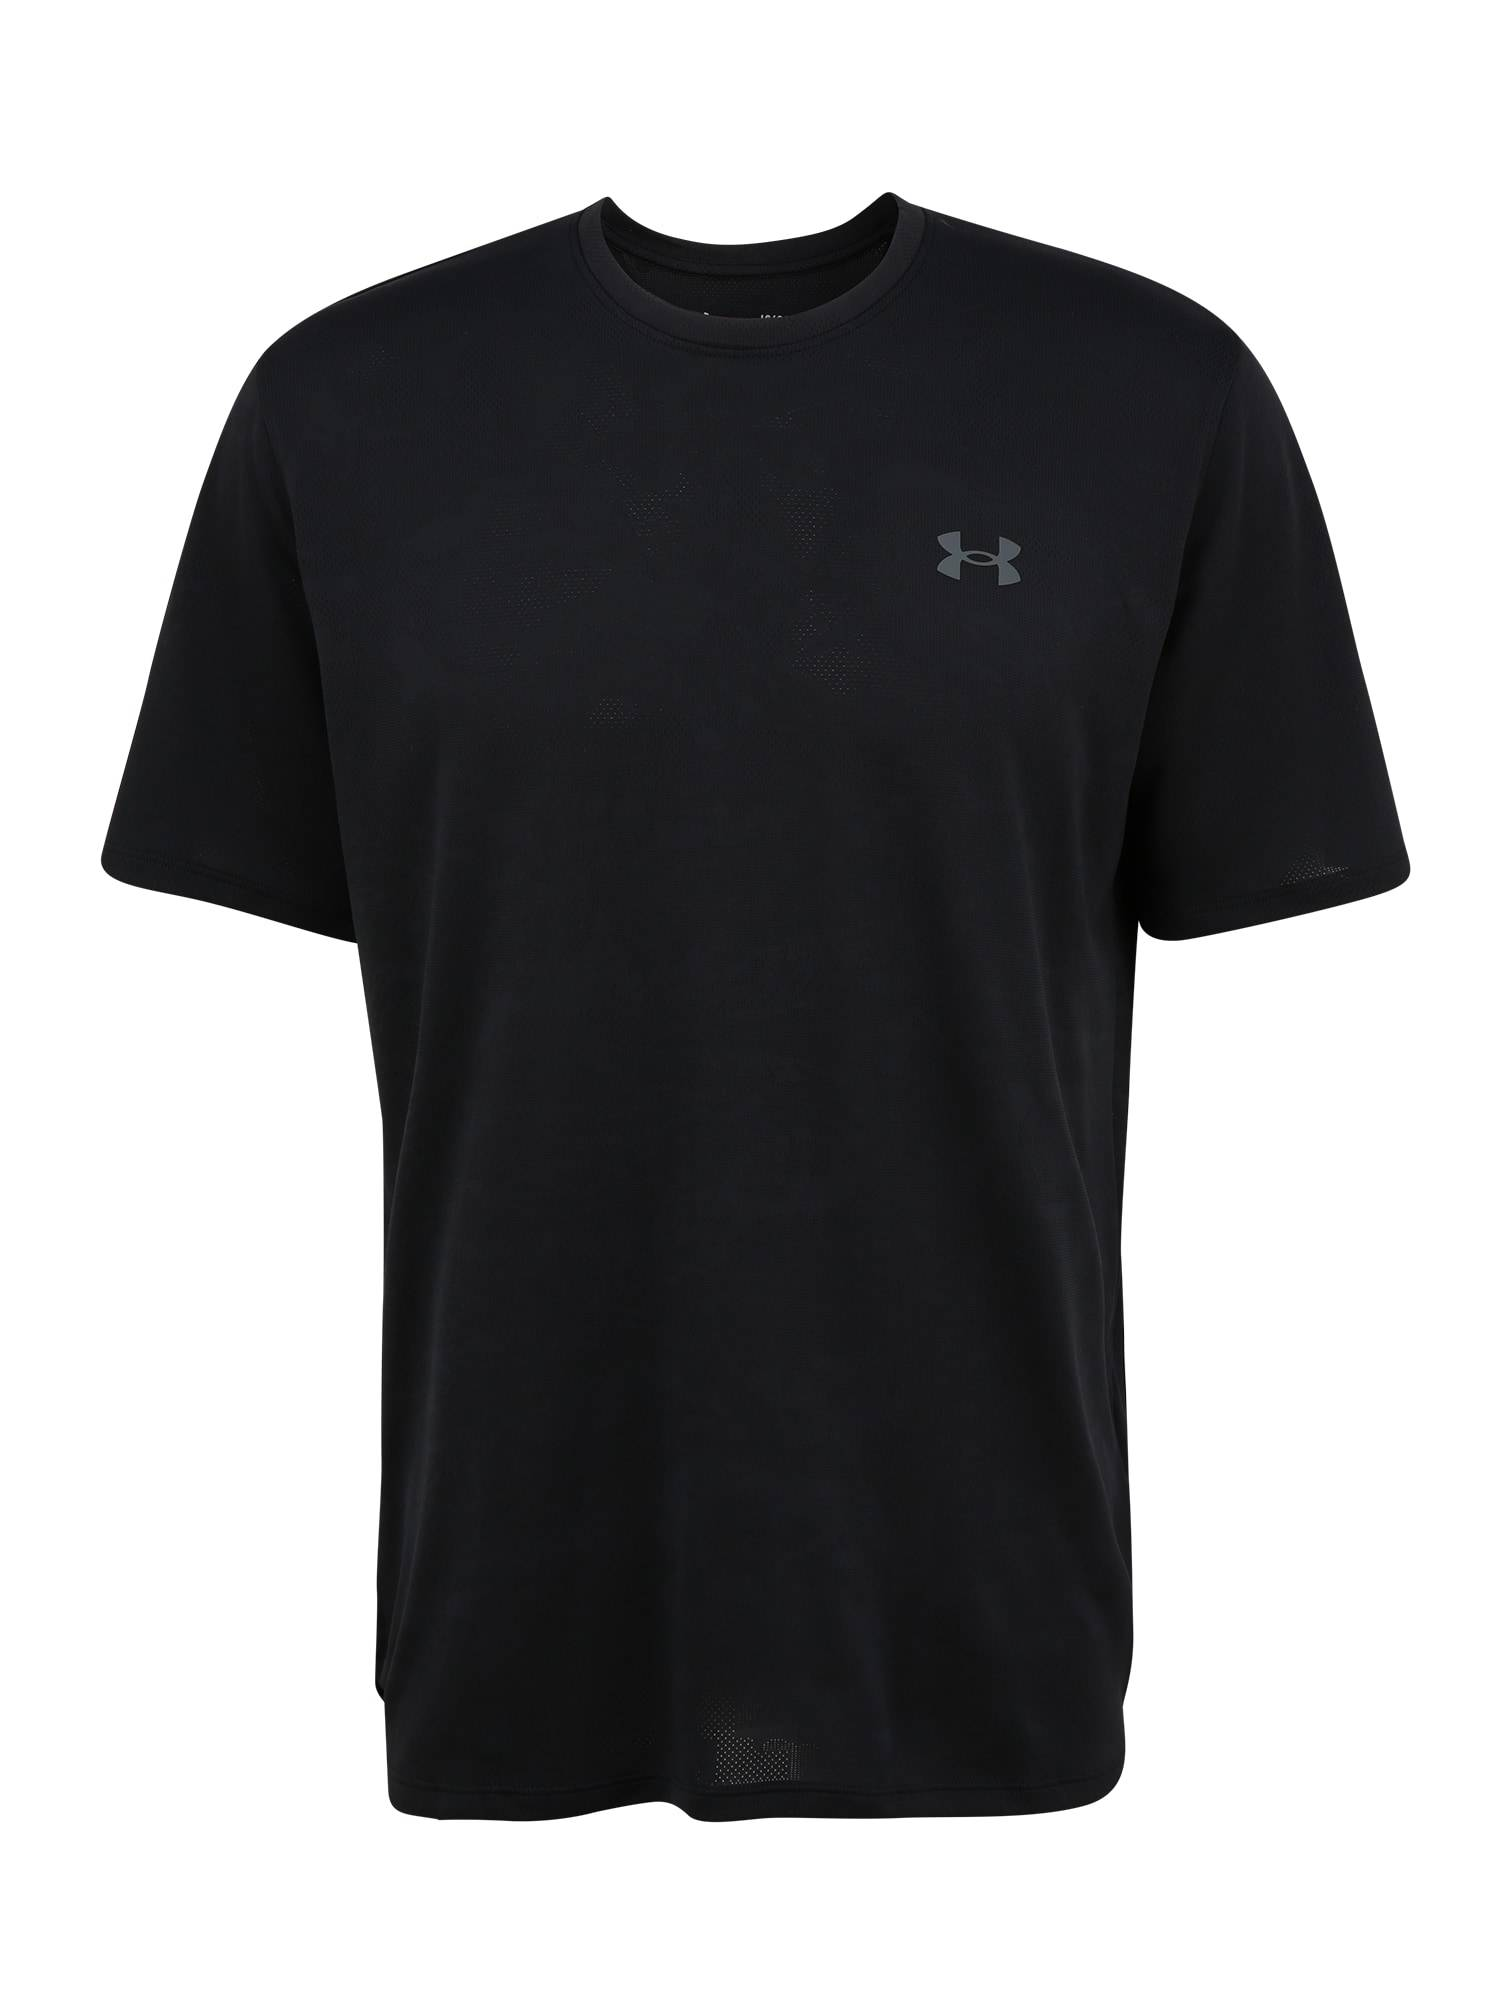 UNDER ARMOUR T-Shirt fonctionnel 'Train'  - Noir - Taille: M - male